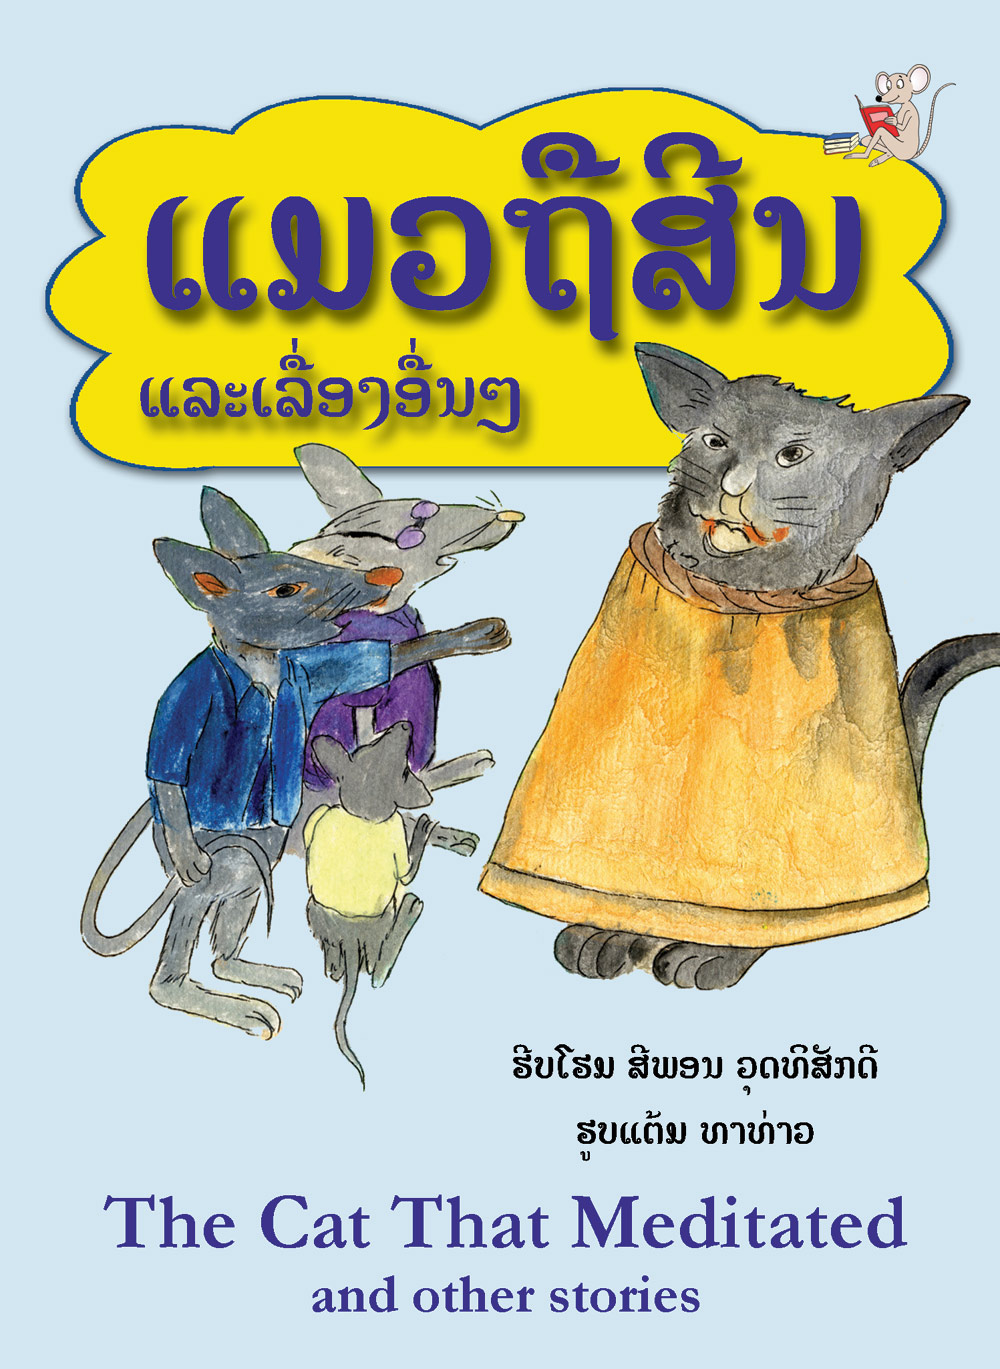 The Cat that Meditated large book cover, published in Lao and English